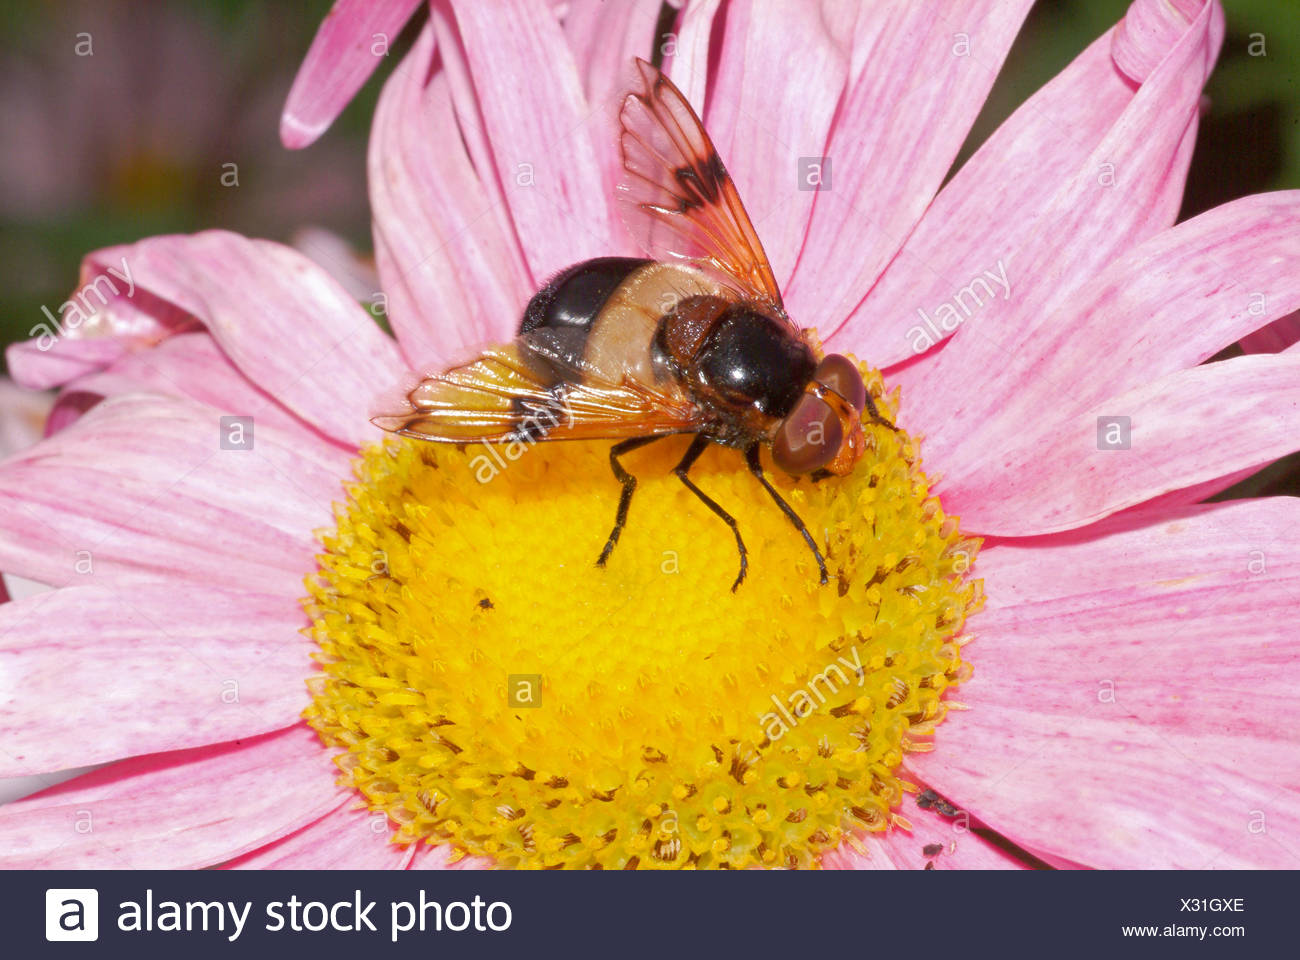 Pellucid Hoverfly, Pellucid Fly (Volucella pellucens), sitting on a blossom, GermanyStock Photo